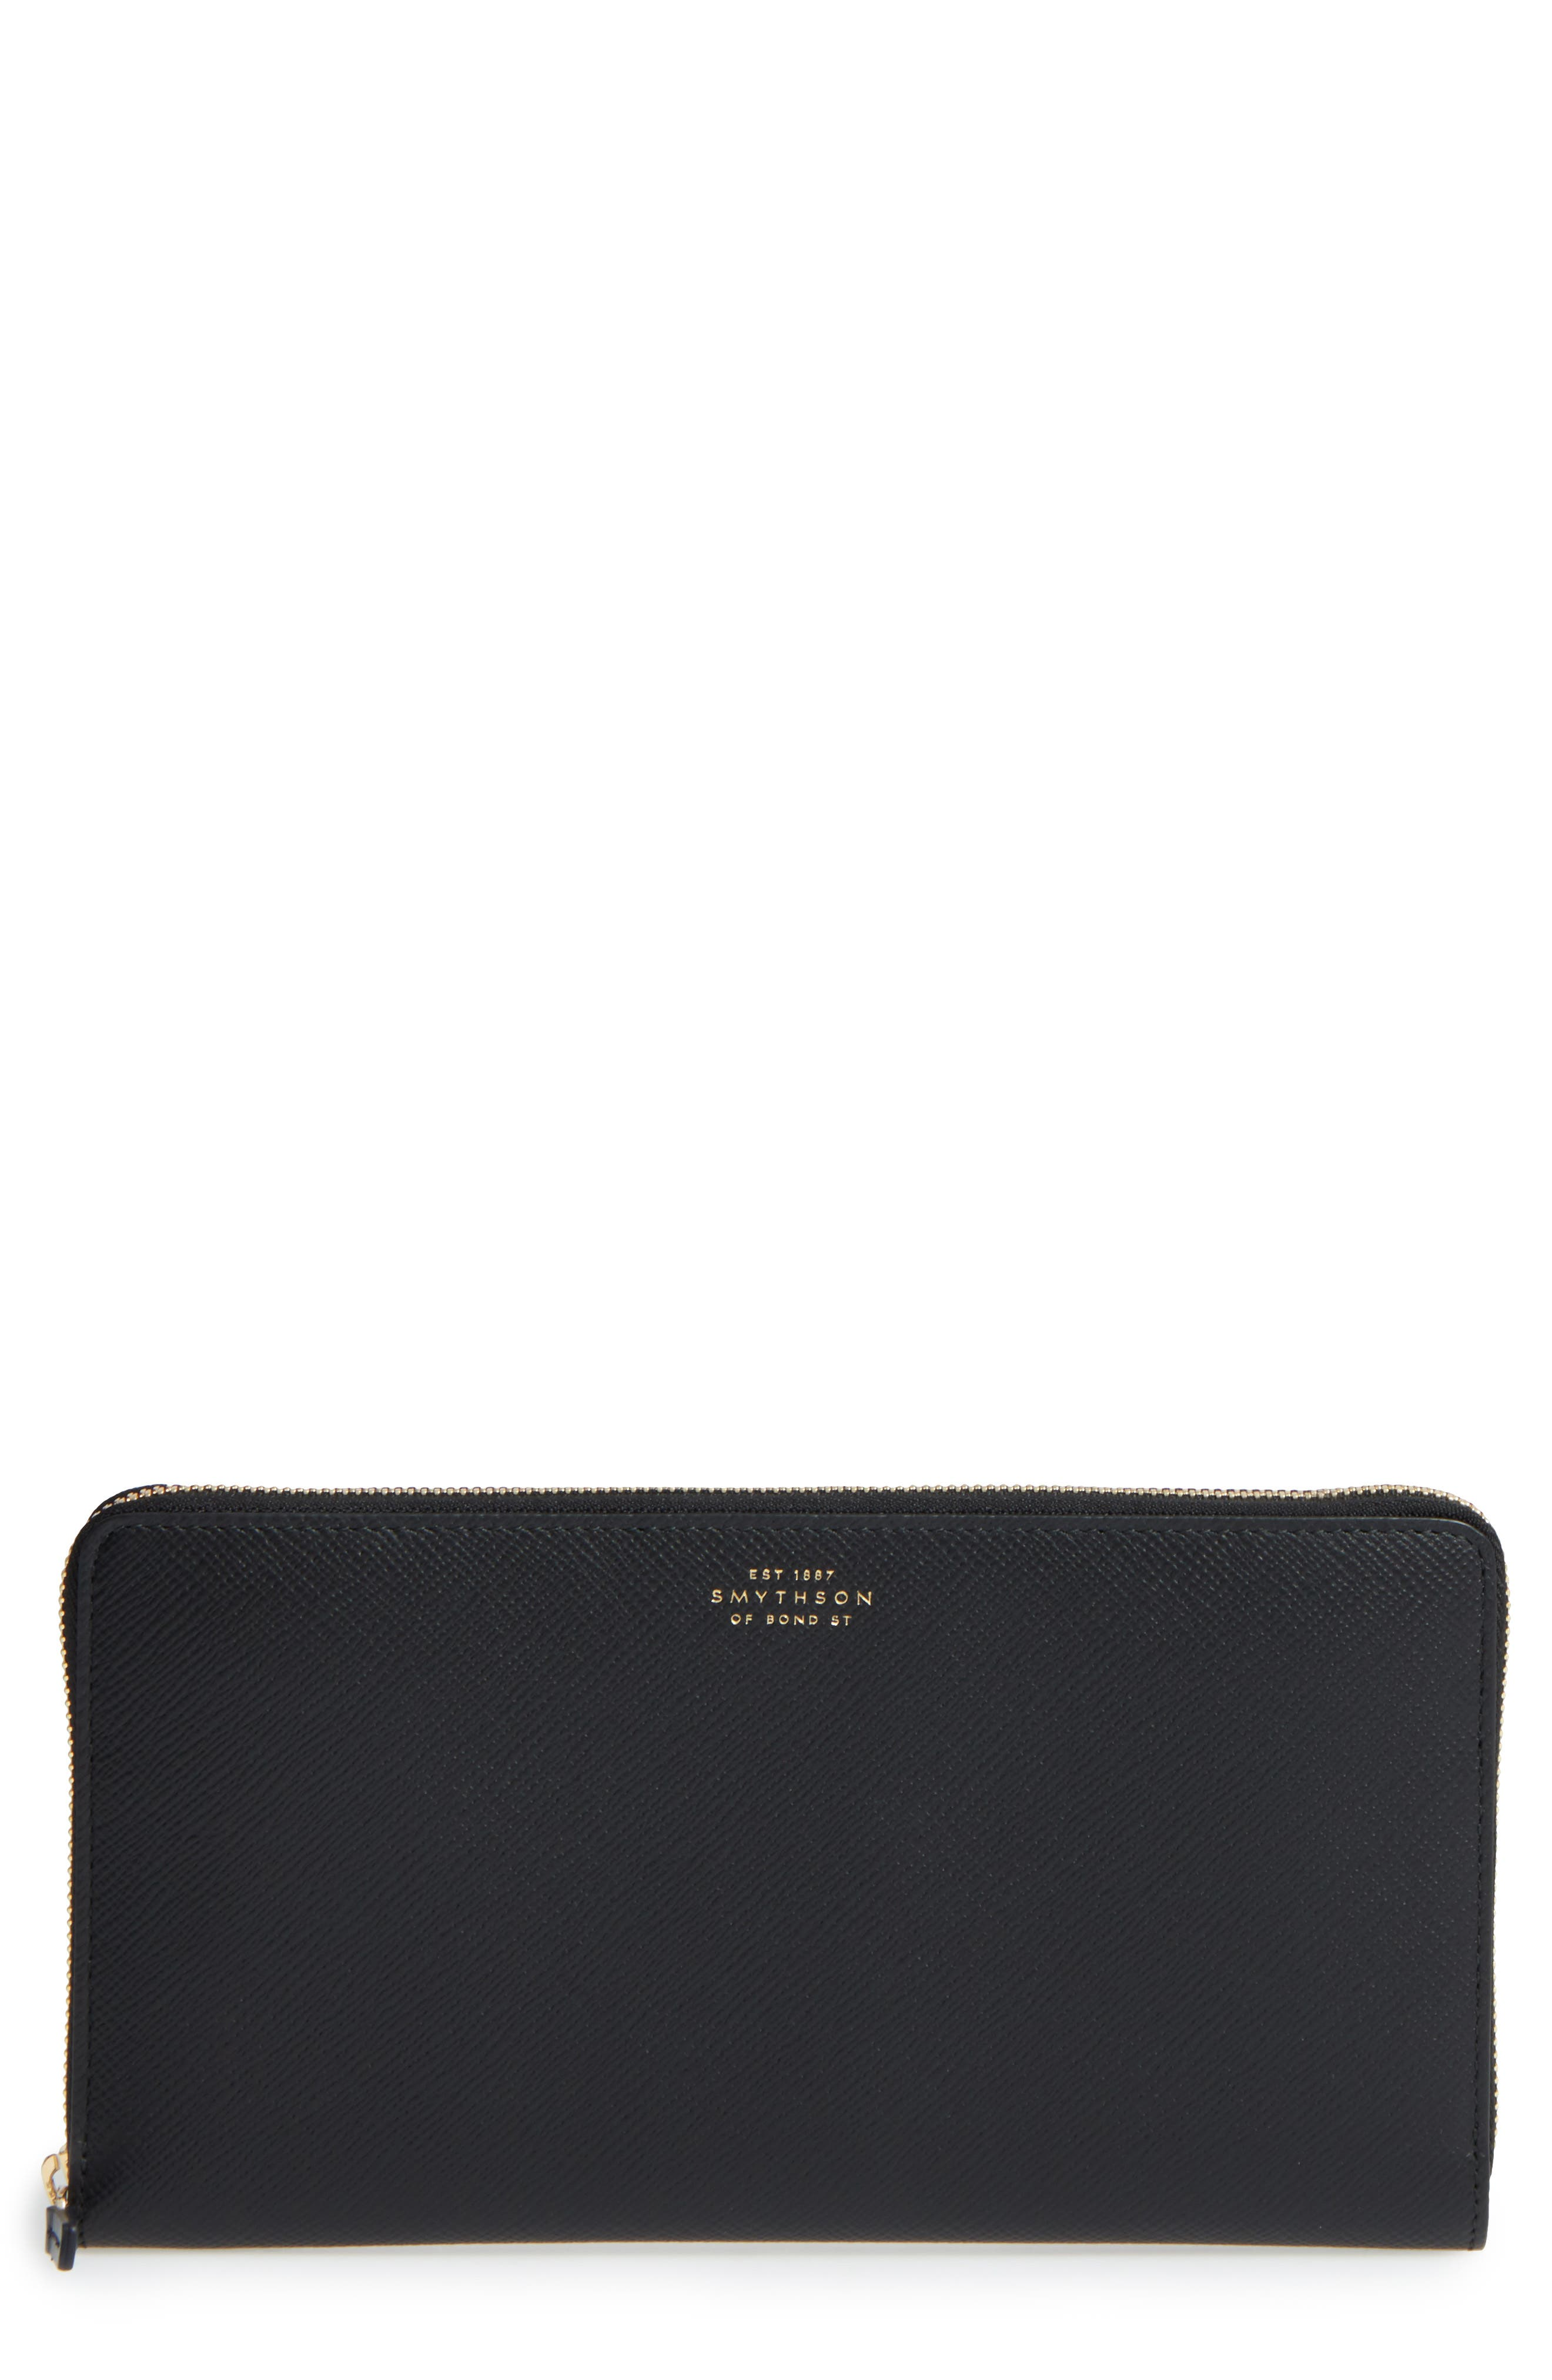 Smythson Panama Calfskin Leather Travel Wallet & Passport Case